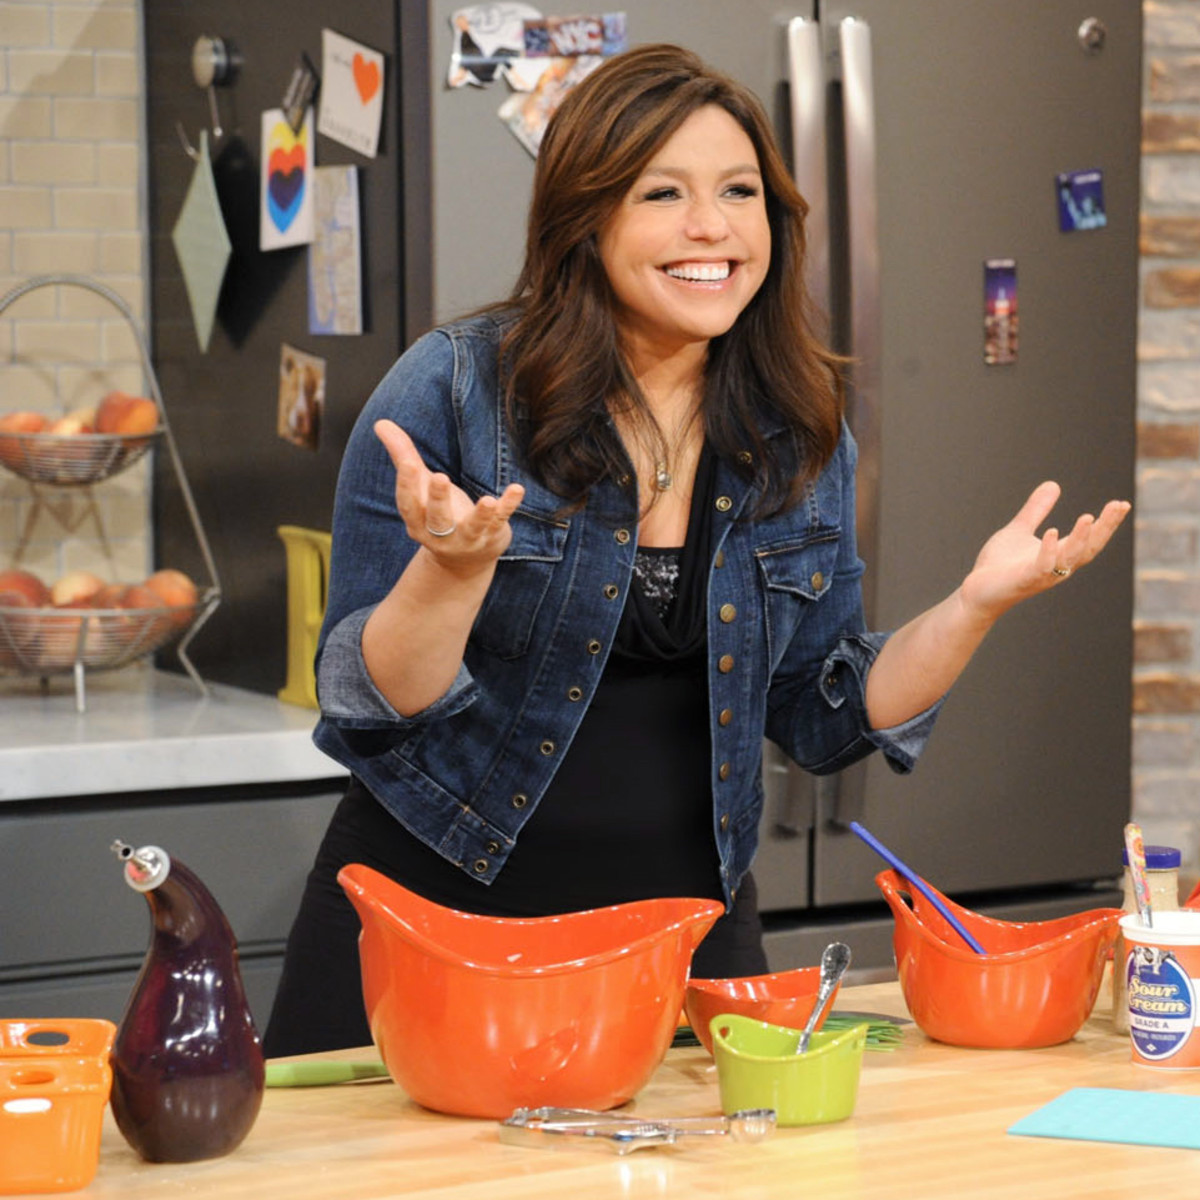 Rachael Ray Show New Season 2020.2 Tickets To The Rachael Ray Show In New York Charitybuzz